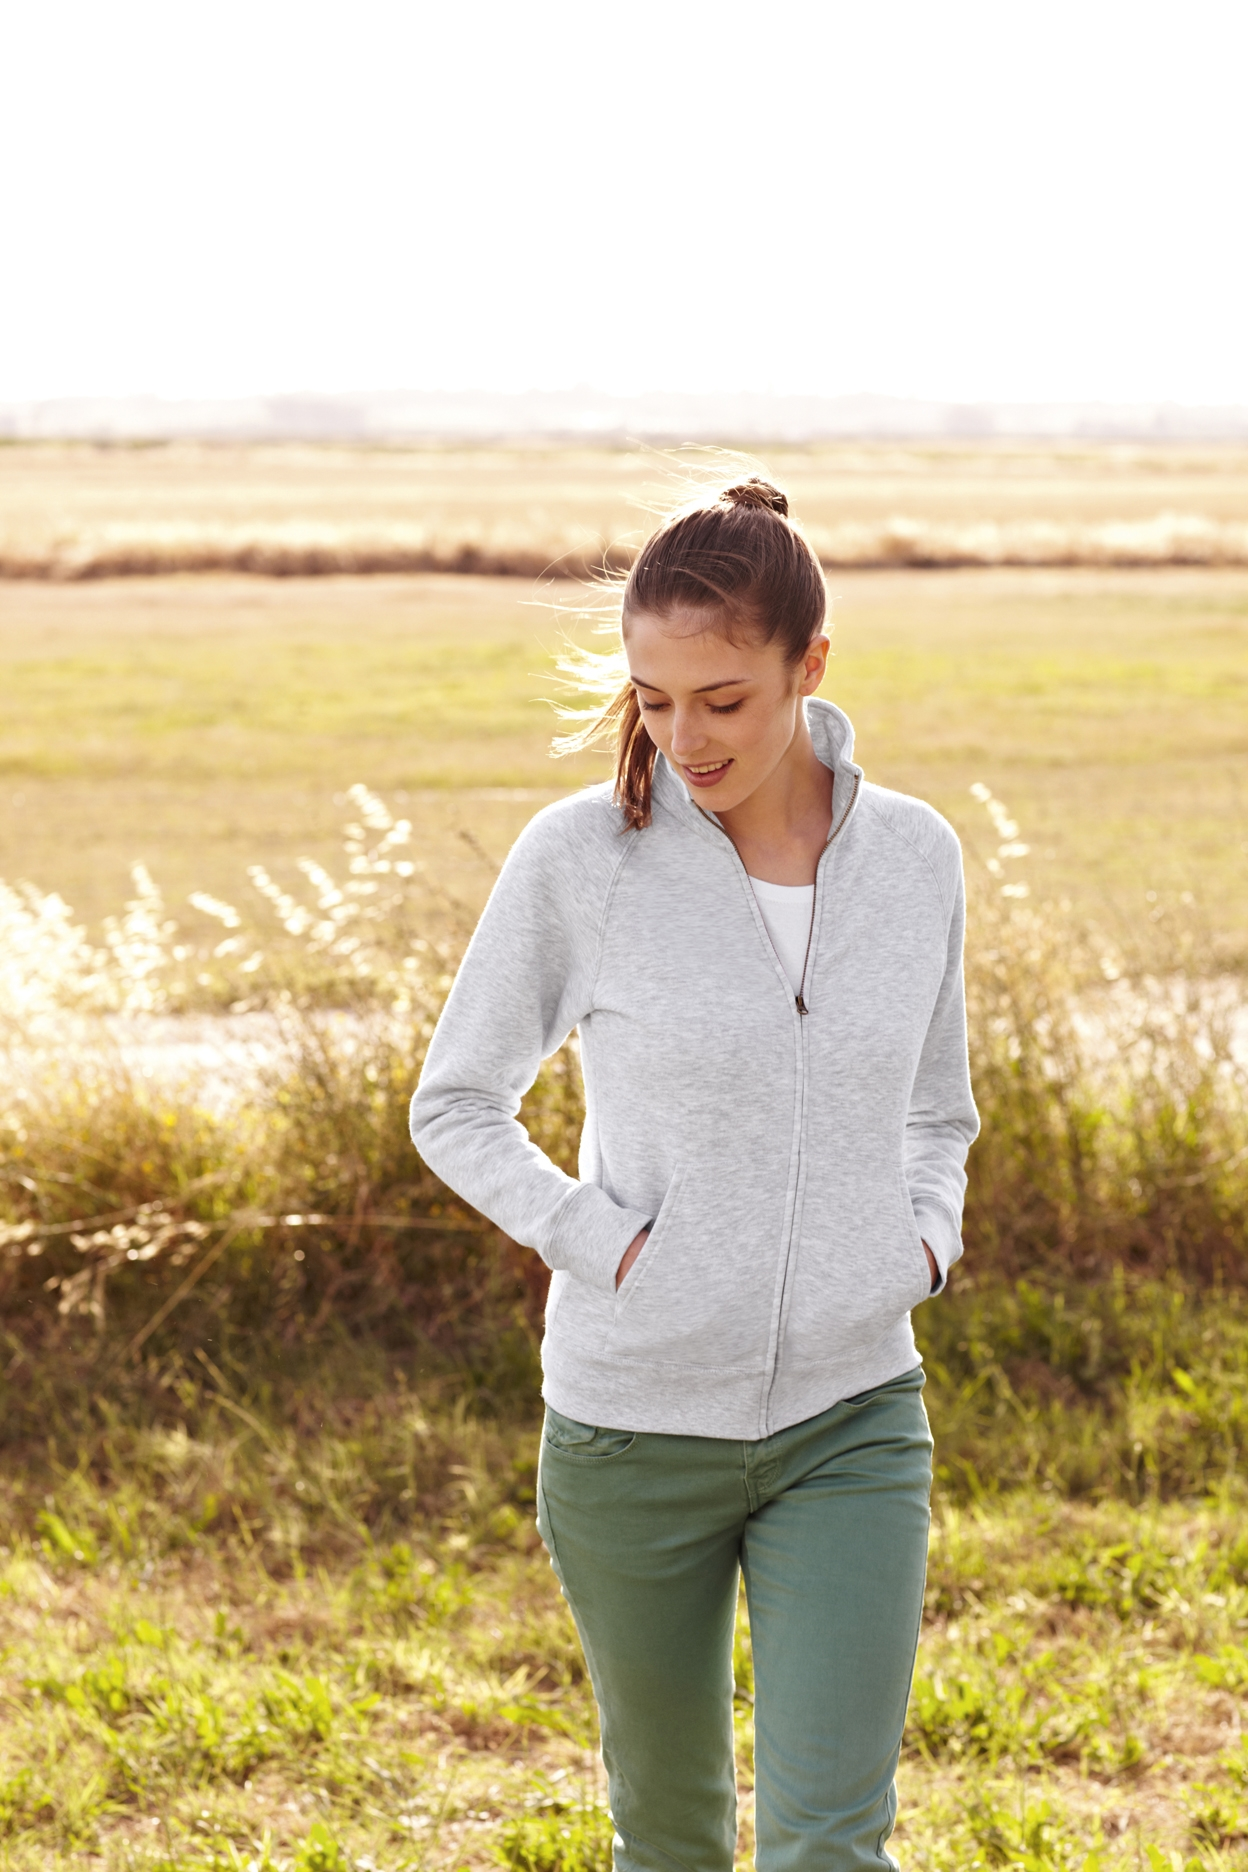 Fruit of the Loom Ladyfit Sweat Jacket